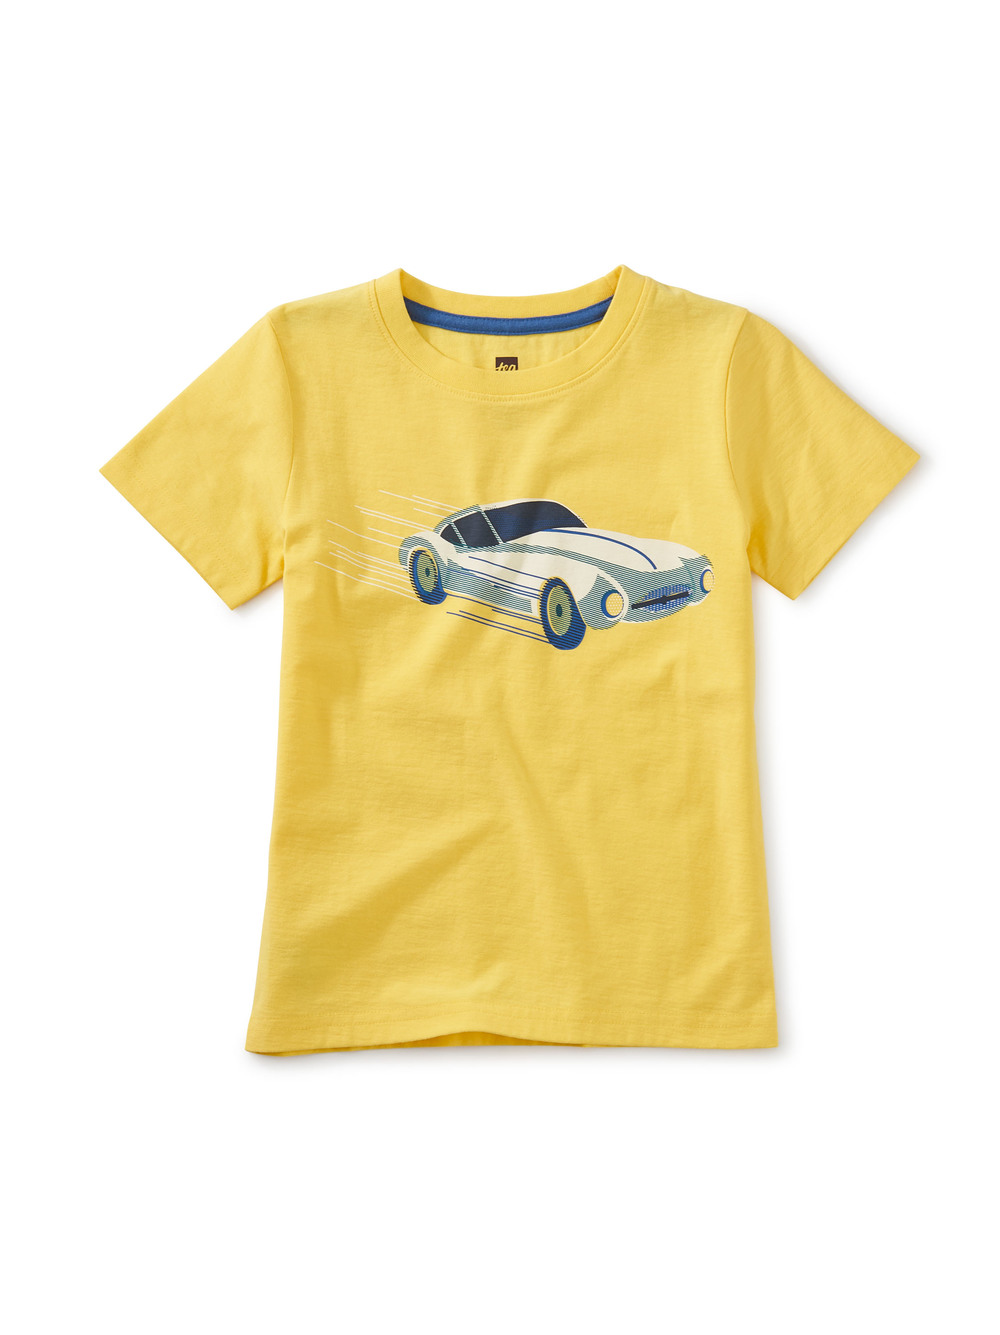 Sports Car Graphic Tee